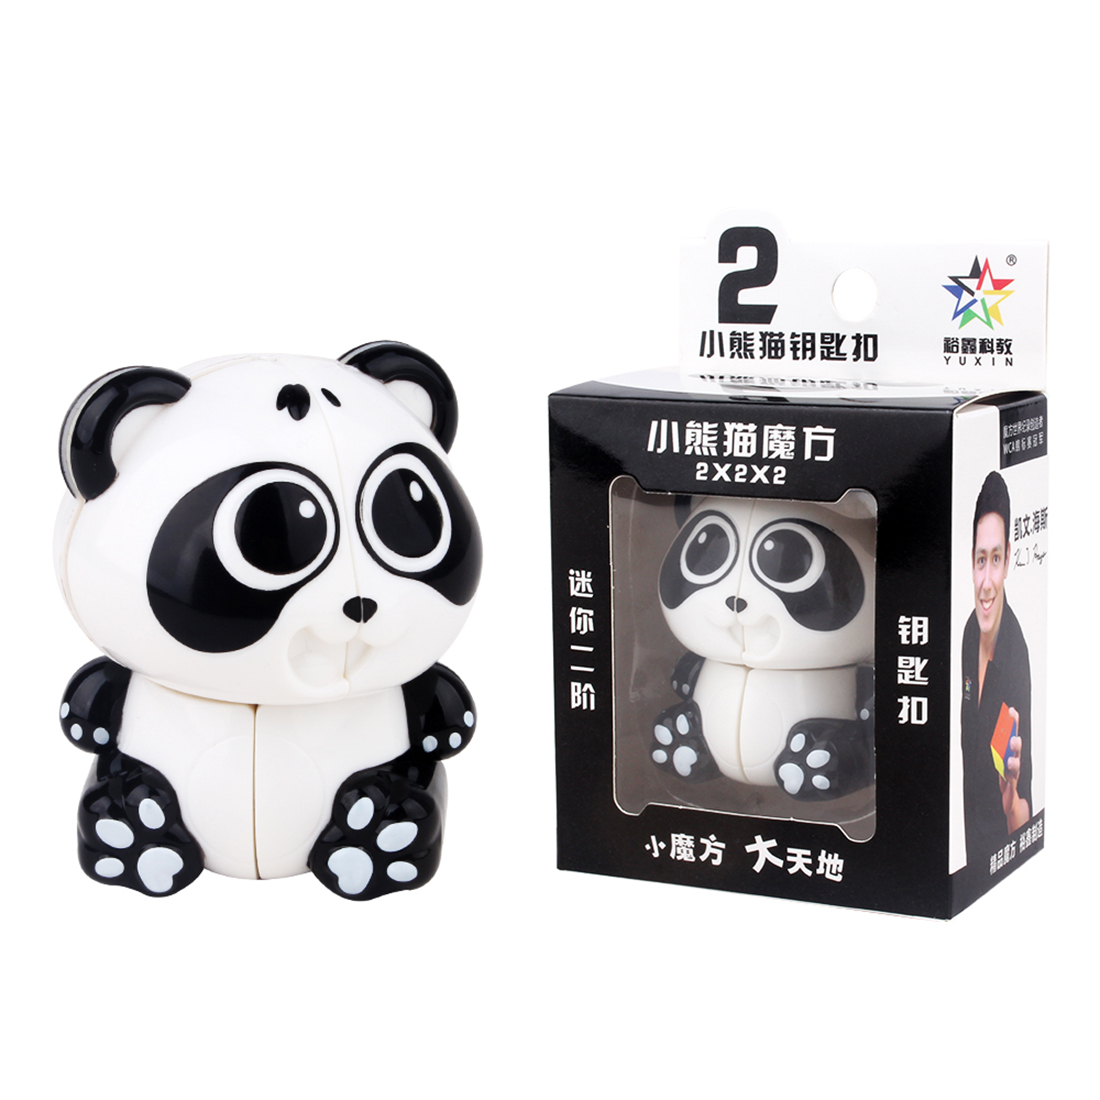 Yuxin Panda 2x2 Keychain Magic Cube Early Educational Toy New Toys For Kids Children New Cube 2019